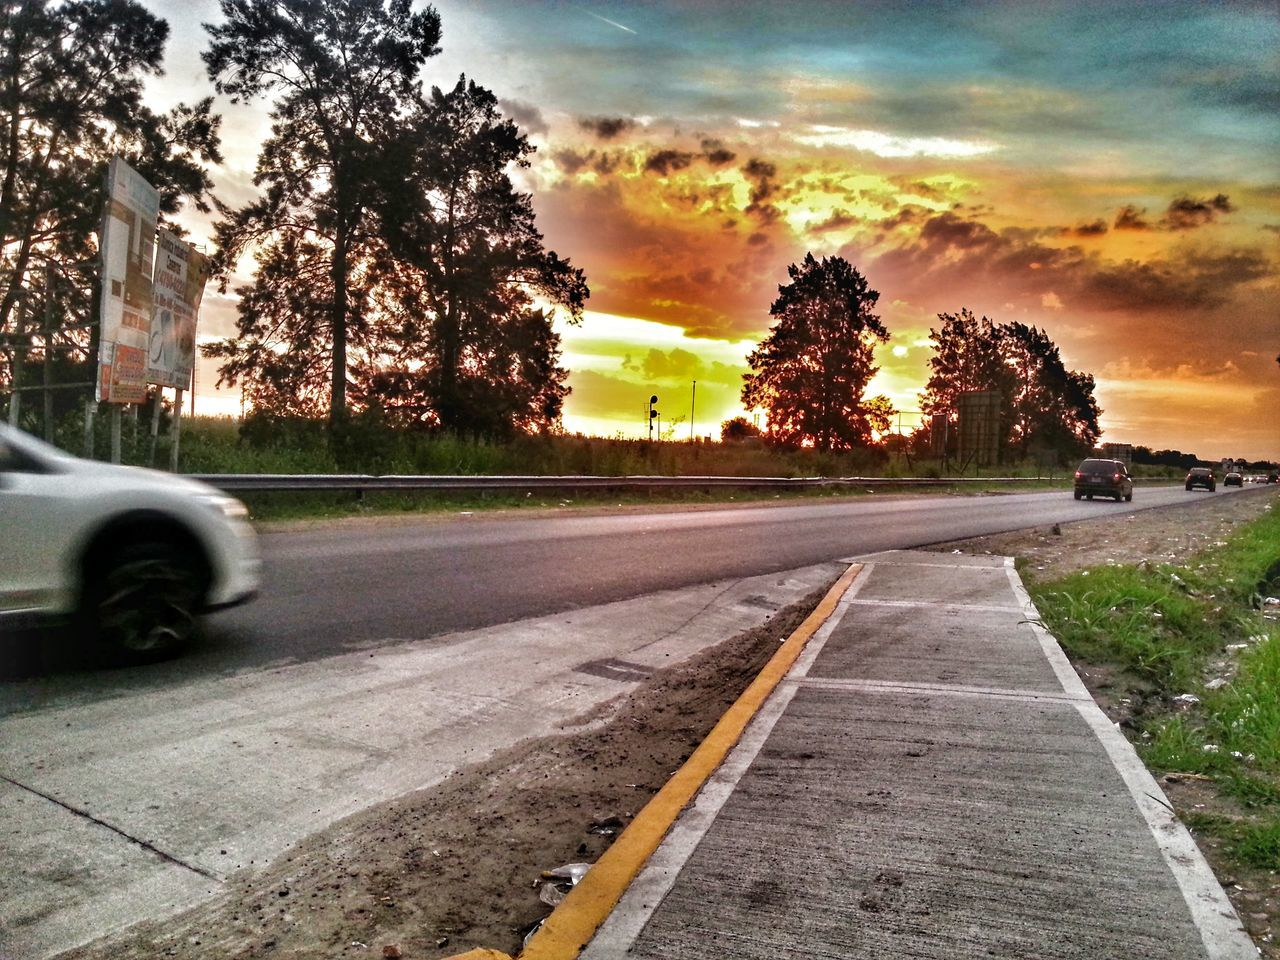 Photography Twilight Road Palomar Buenosaires Argentina